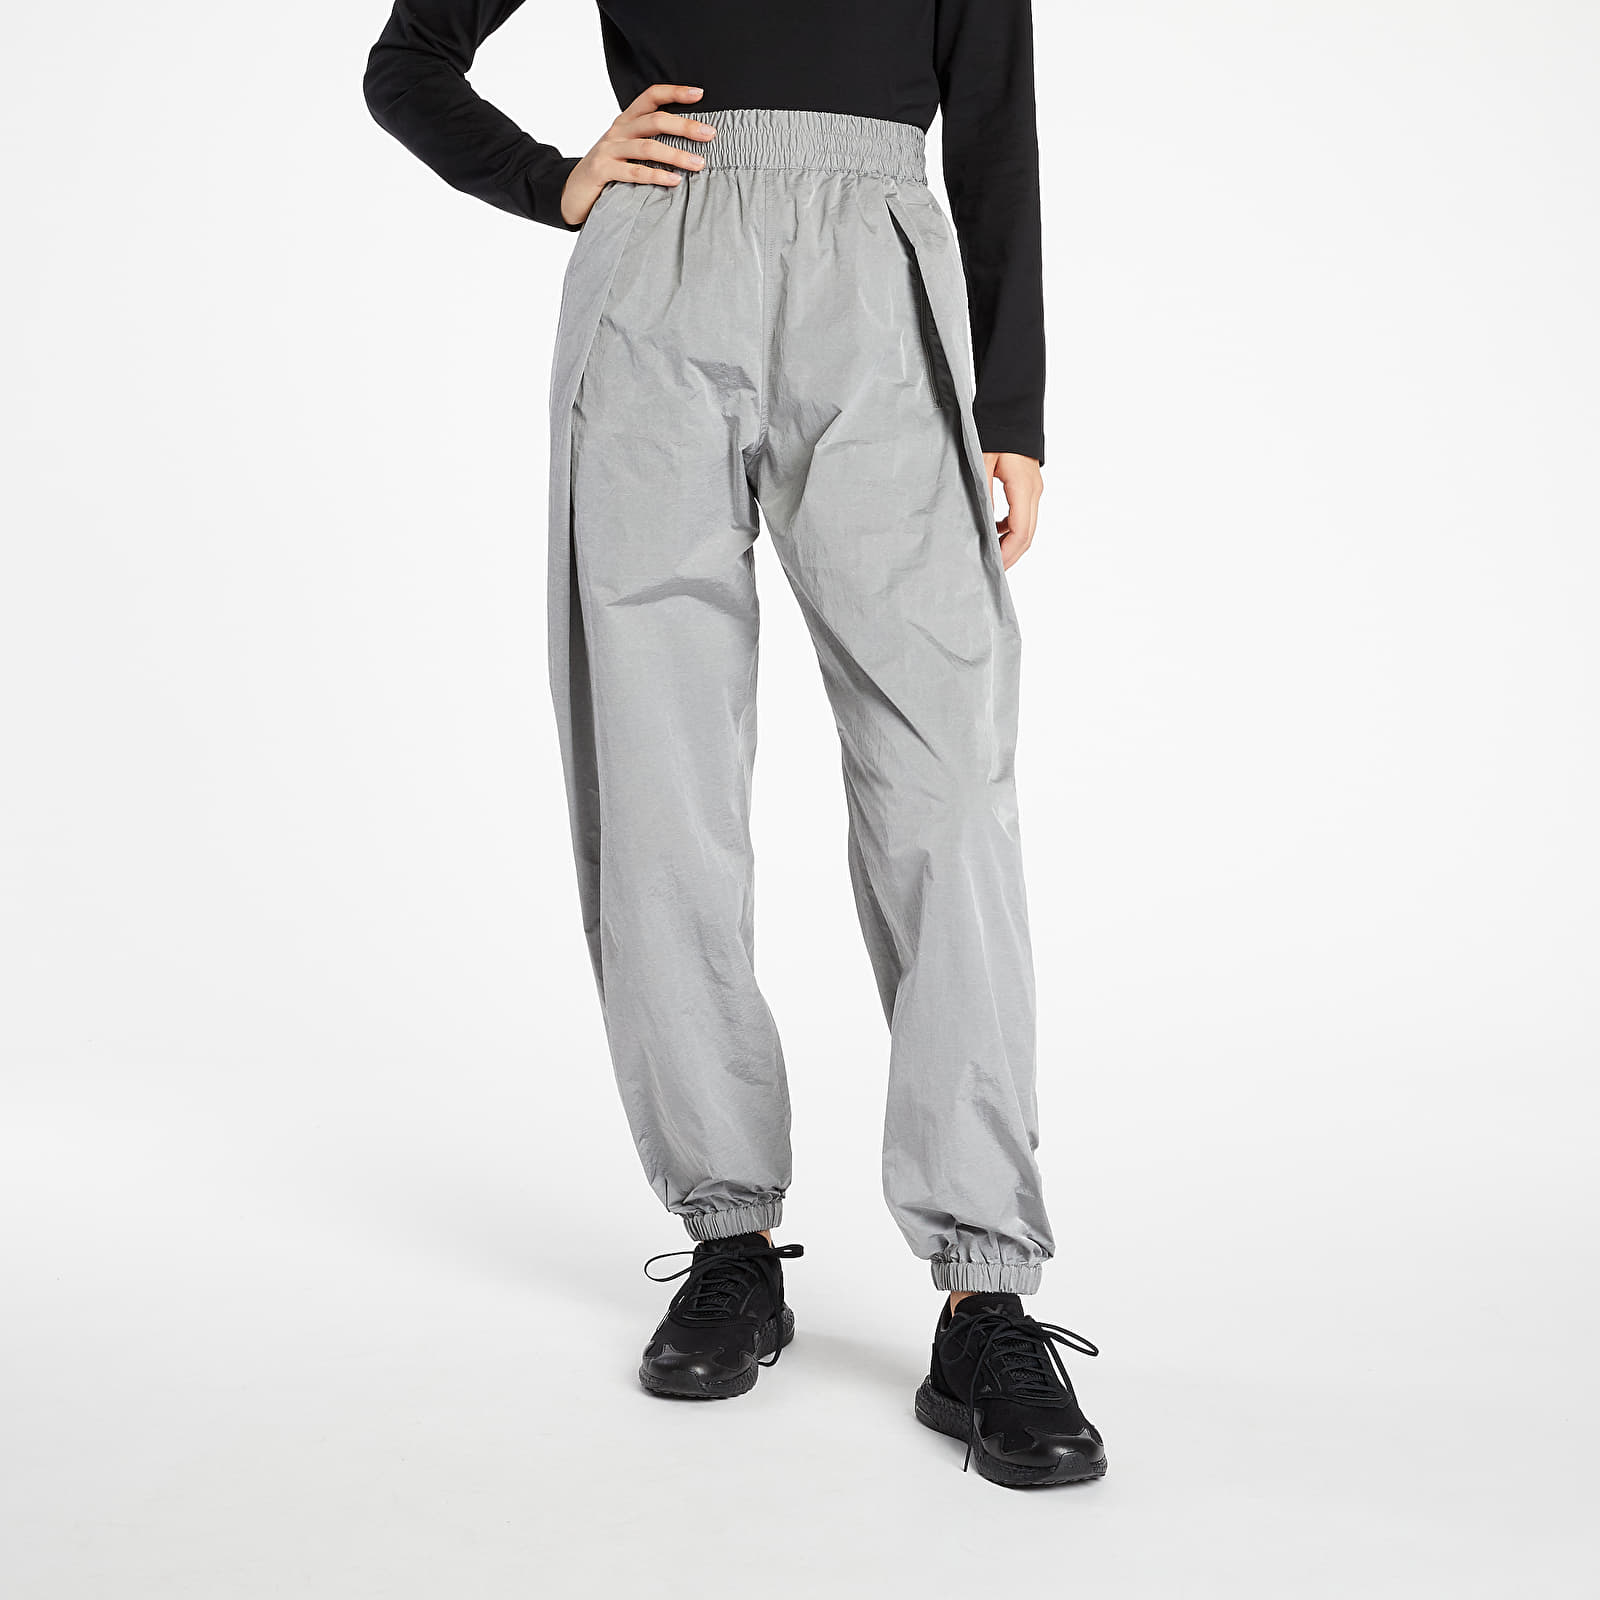 Y-3 Ch1 Track Pants Burnished Silver